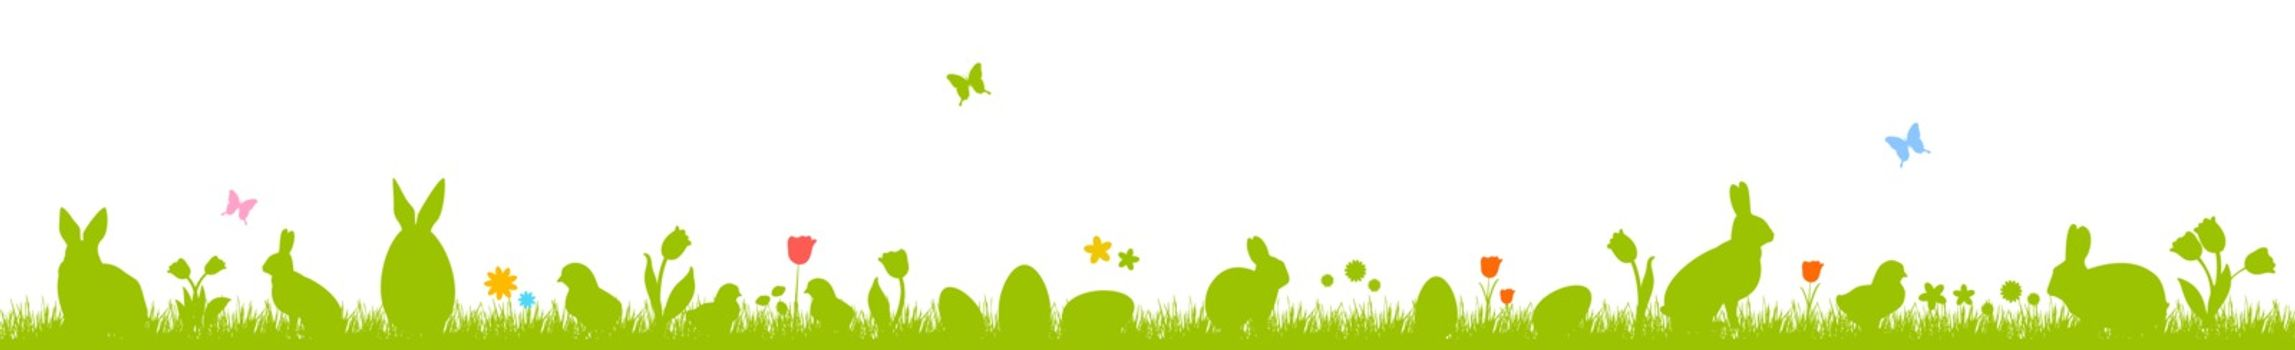 Banner with Easter eggs, rabbits, chickens and flowers. Silhouettes on a white background. Easter banner.